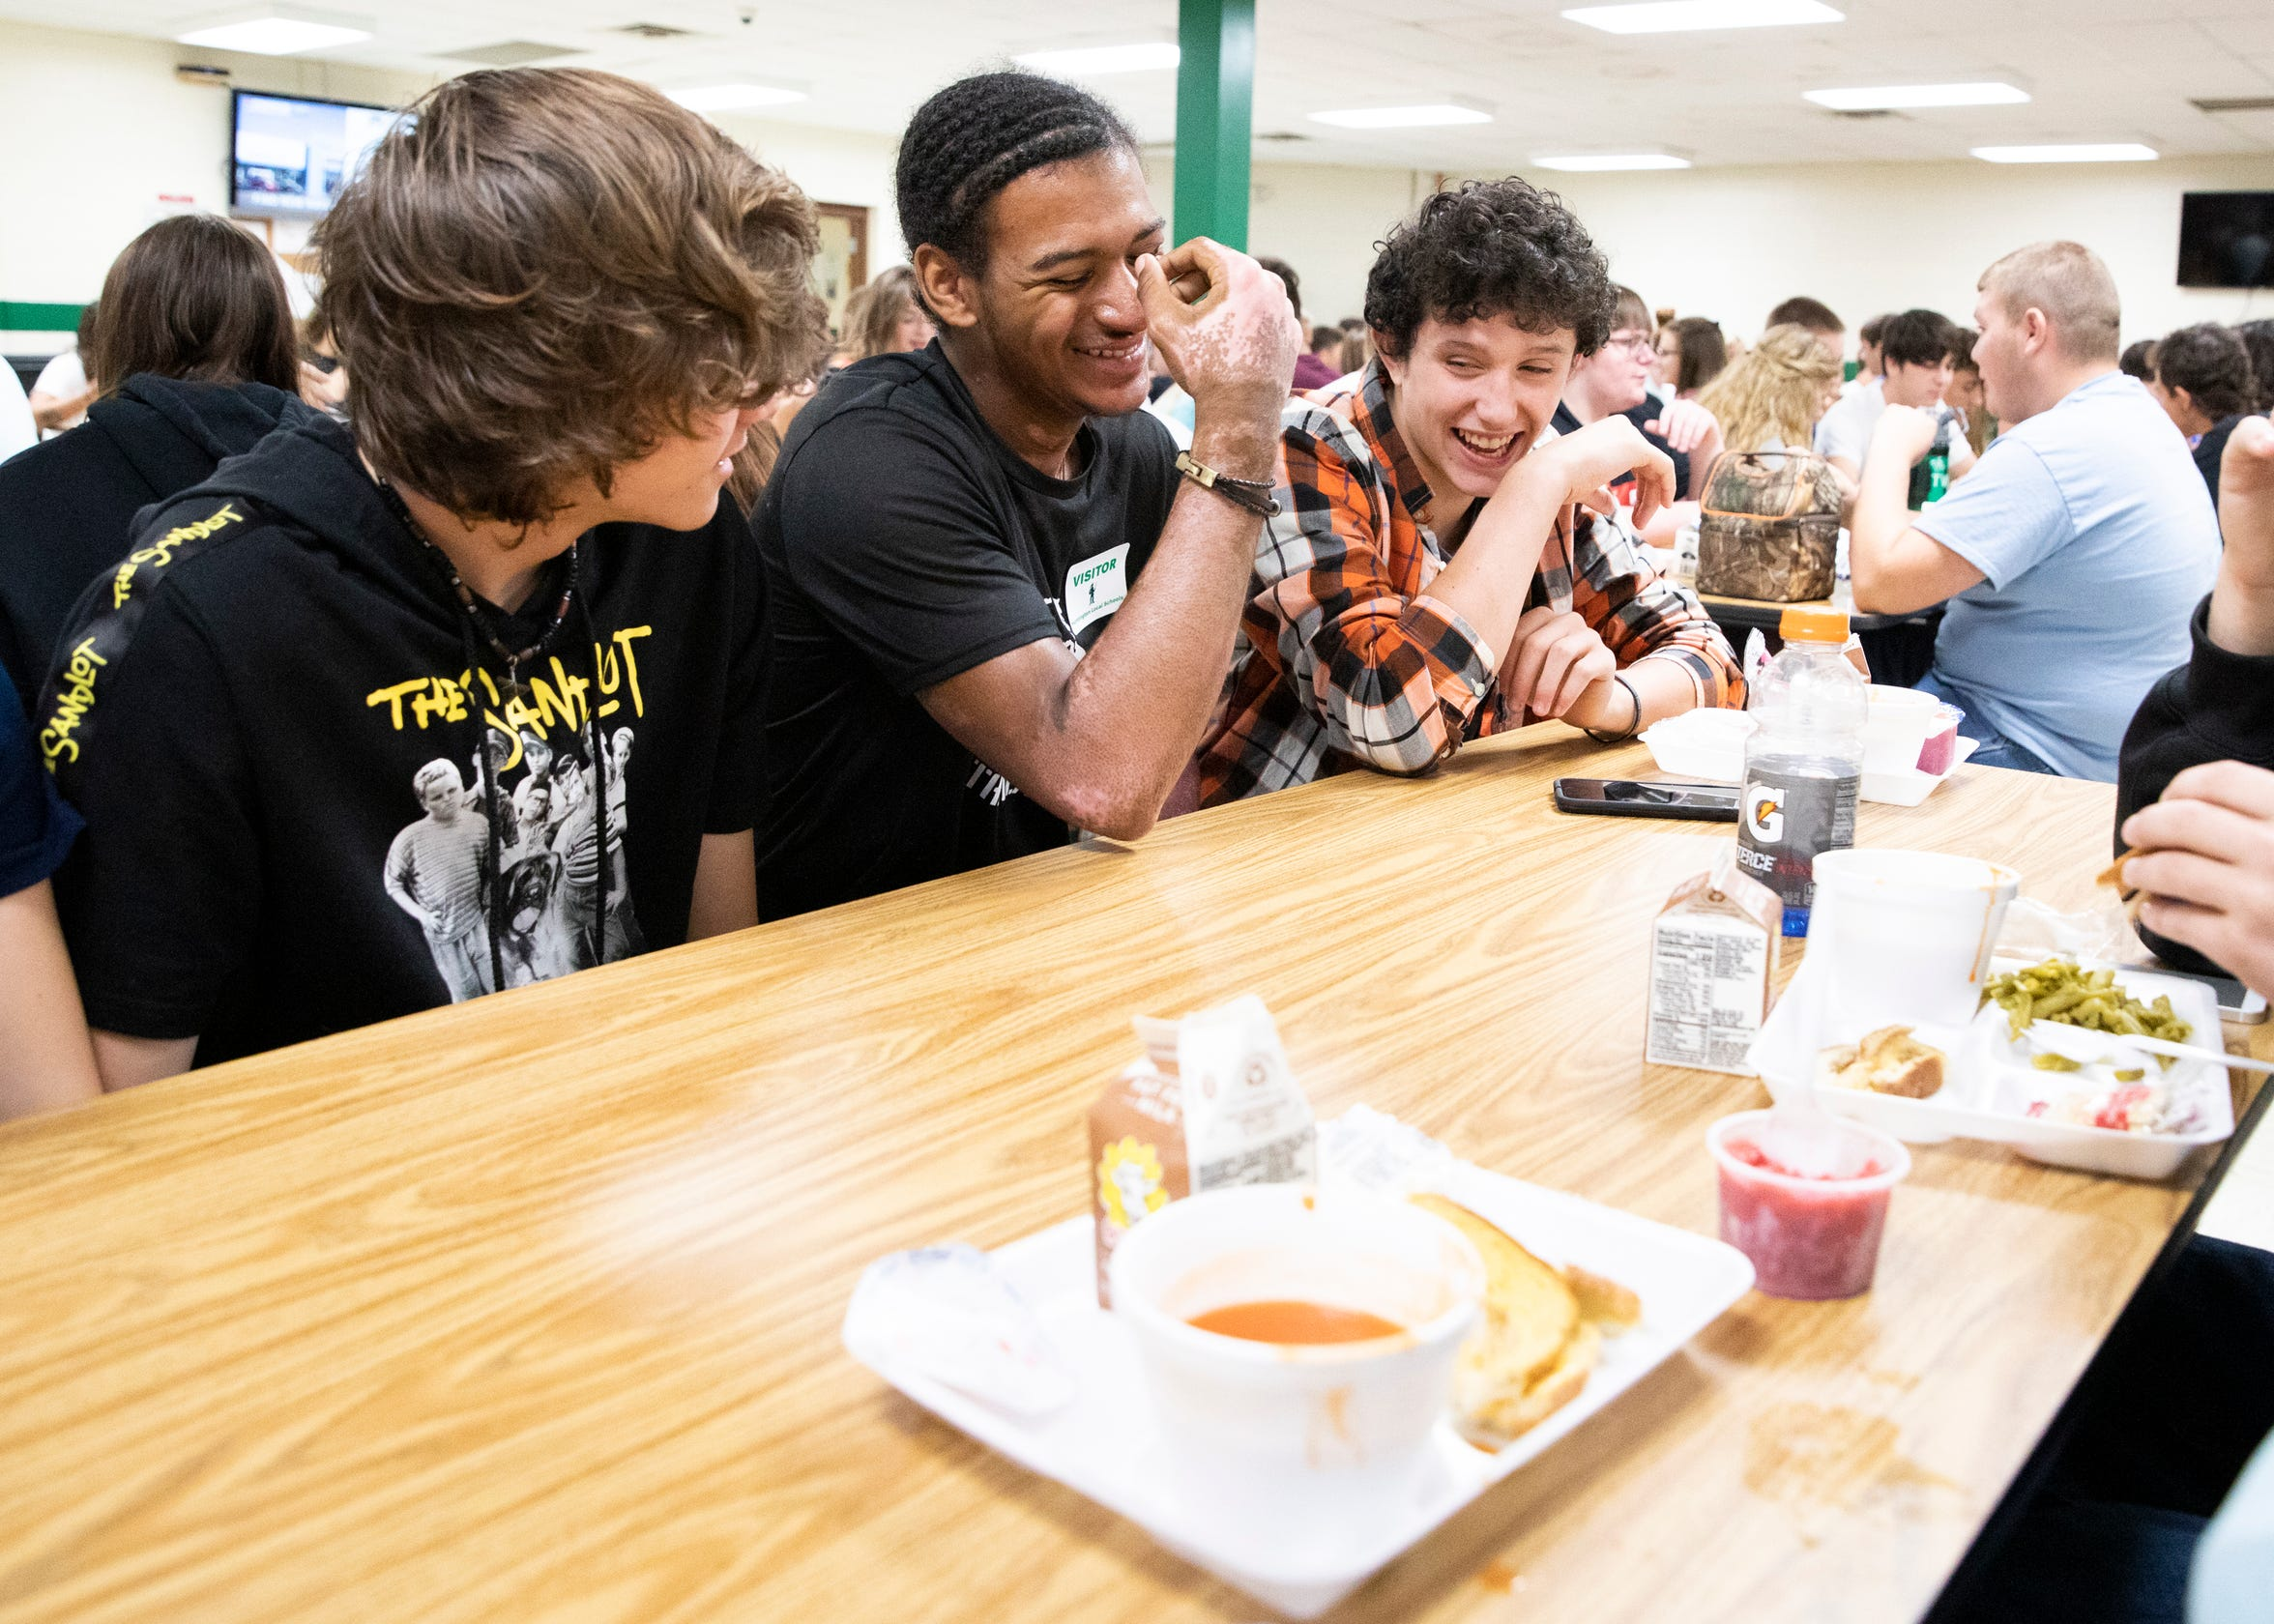 Canaan spends time at lunch with his friends during one of his last visits at Huntington High School. He would go back to Huntington School twice before he left for Ohio University to see his friends and to let them know he was doing okay.